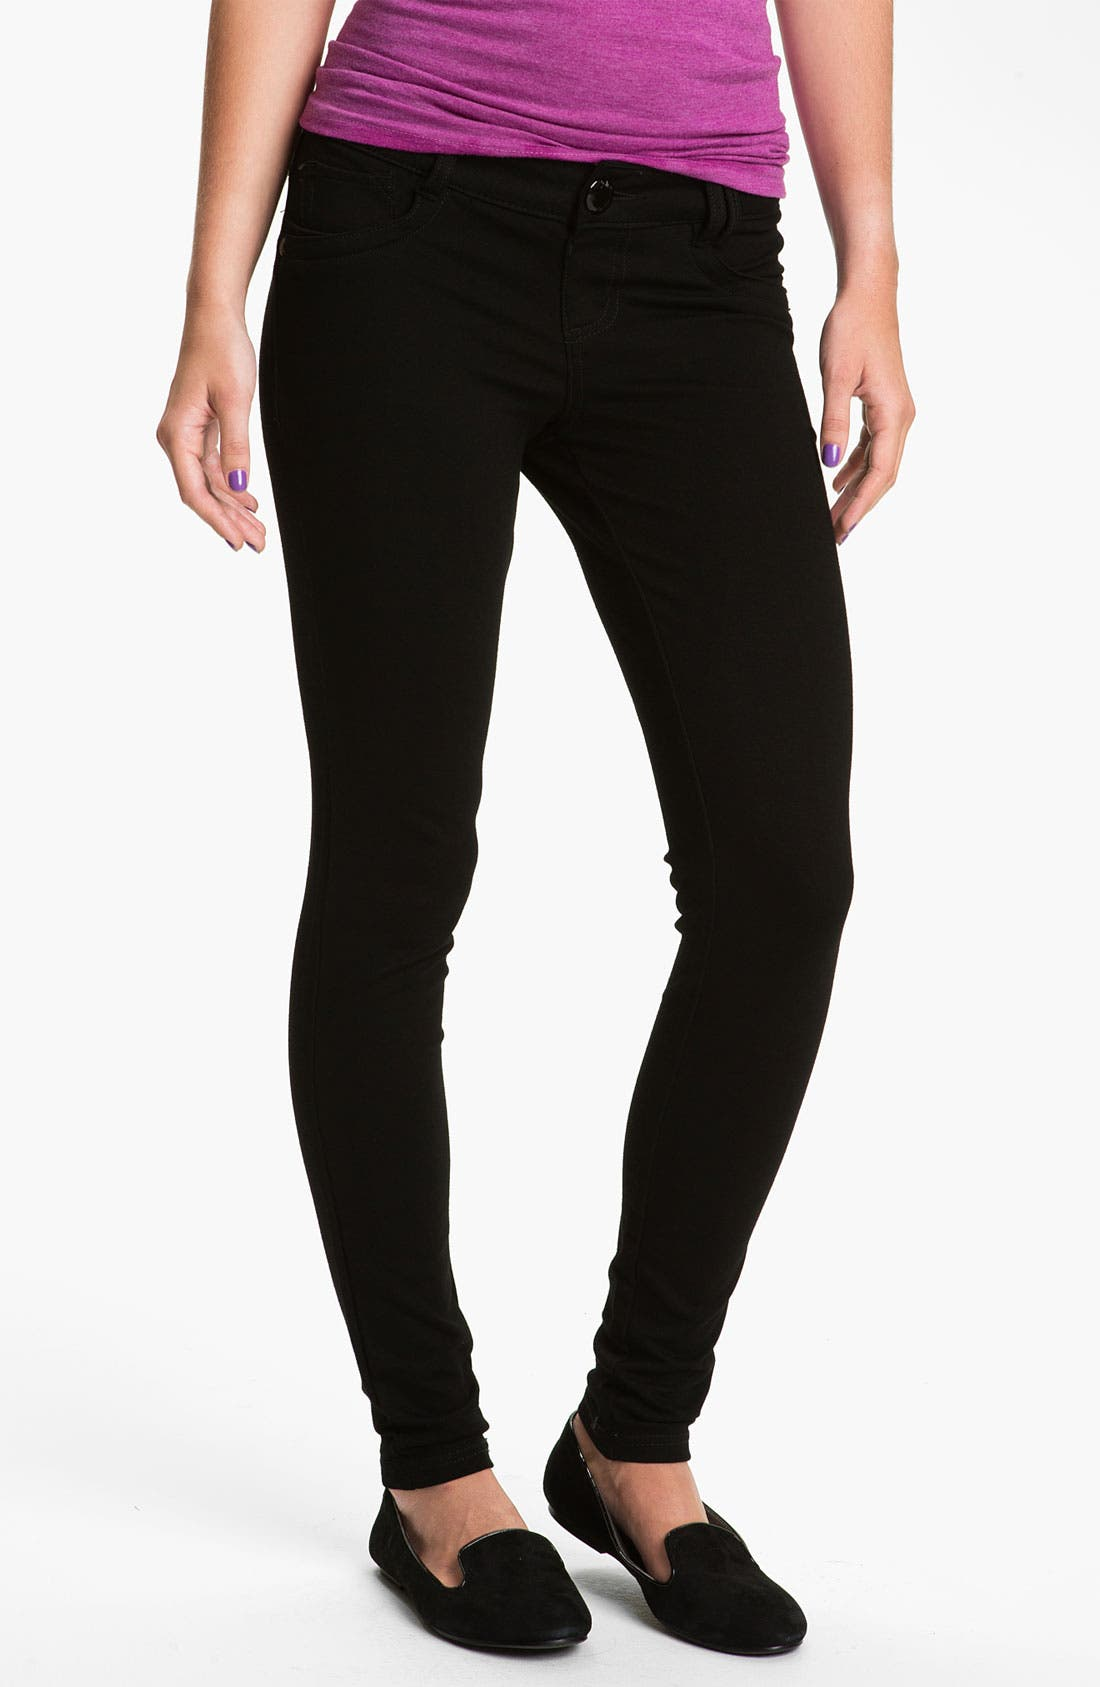 Alternate Image 1 Selected - Jolt Ponte Knit Skinny Pants (Juniors)